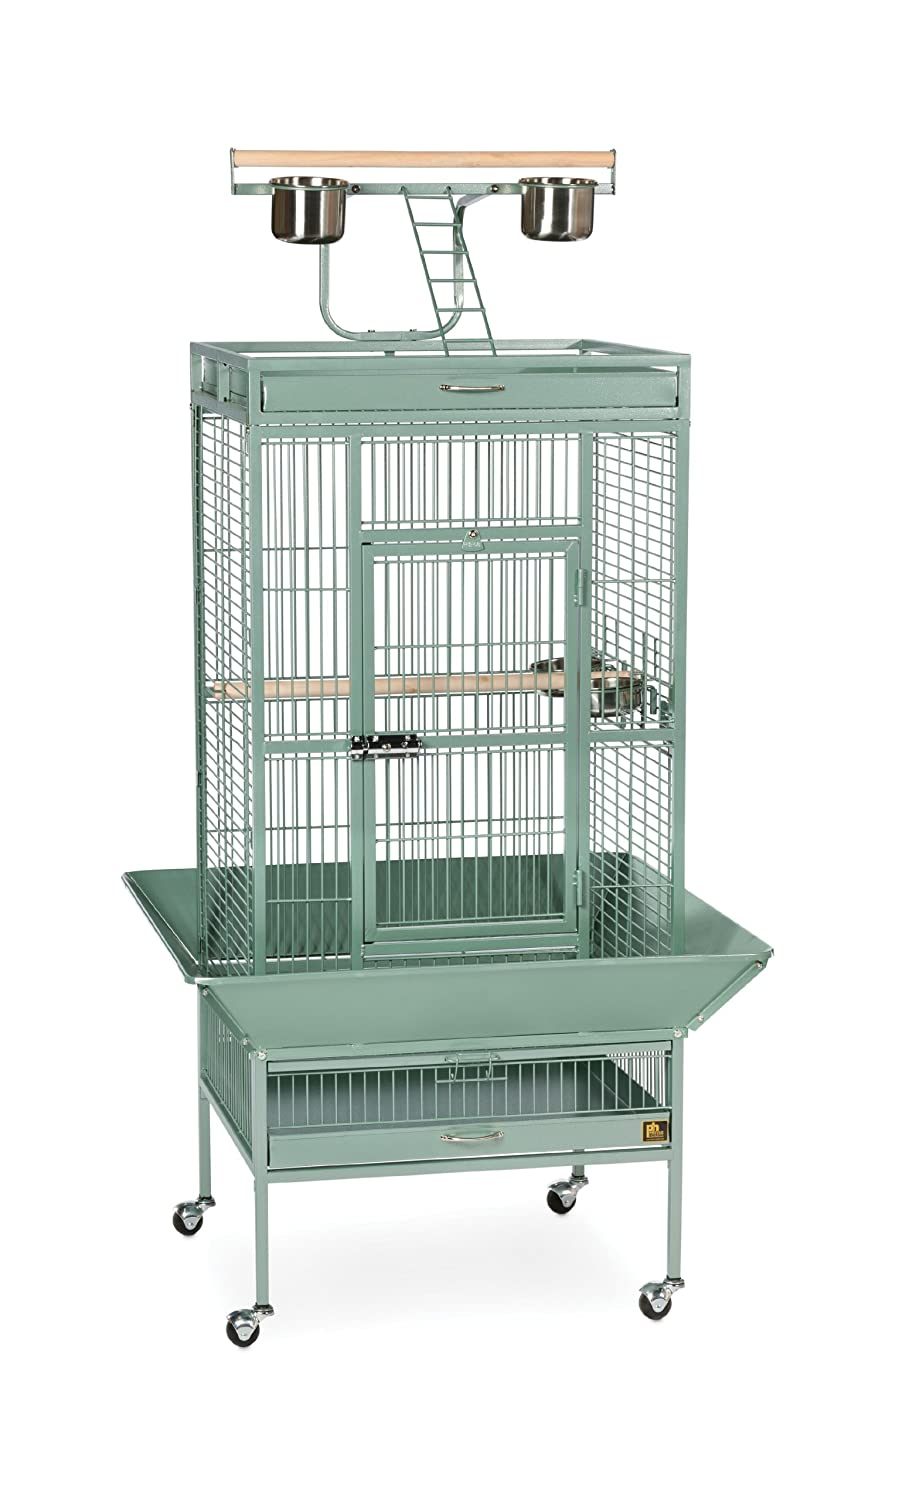 24-Inch by 20-Inch by 60-Inch Prevue Pet Products Wrought Iron Select Bird Cage, 24-Inch by 20-Inch by 60-Inch, Sage Green